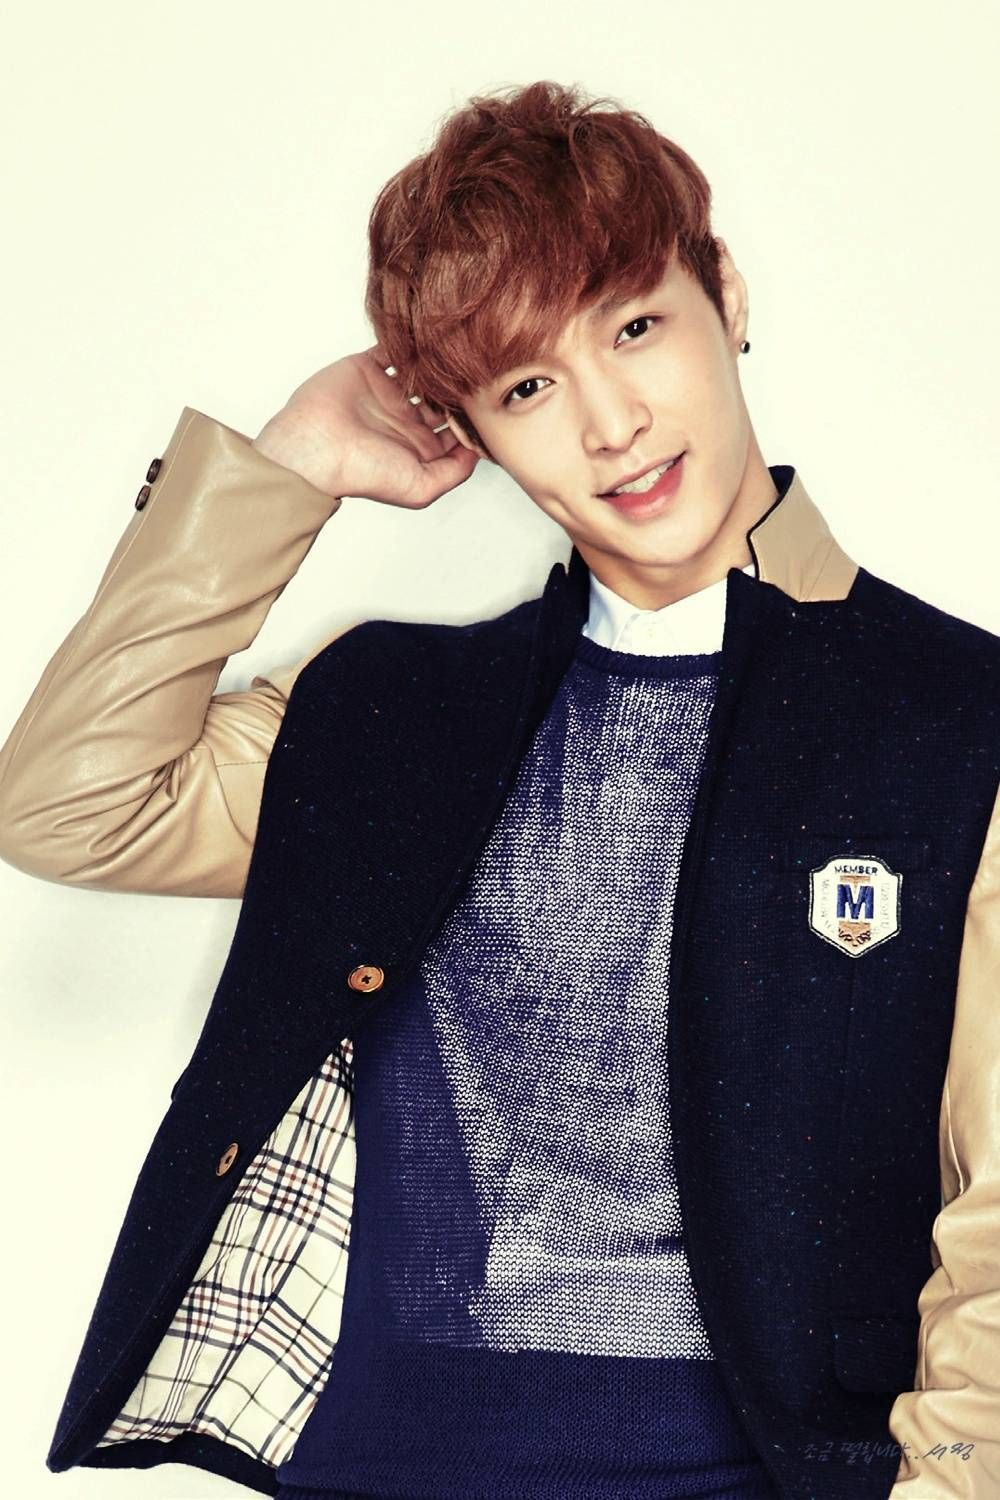 Chinese composer Yuan Wei Jen compliments EXO's Lay on his songwriting ability   http://www.allkpop.com/article/2014/07/chinese-composer-yuan-wei-jen-compliments-exos-lay-on-his-songwriting-ability